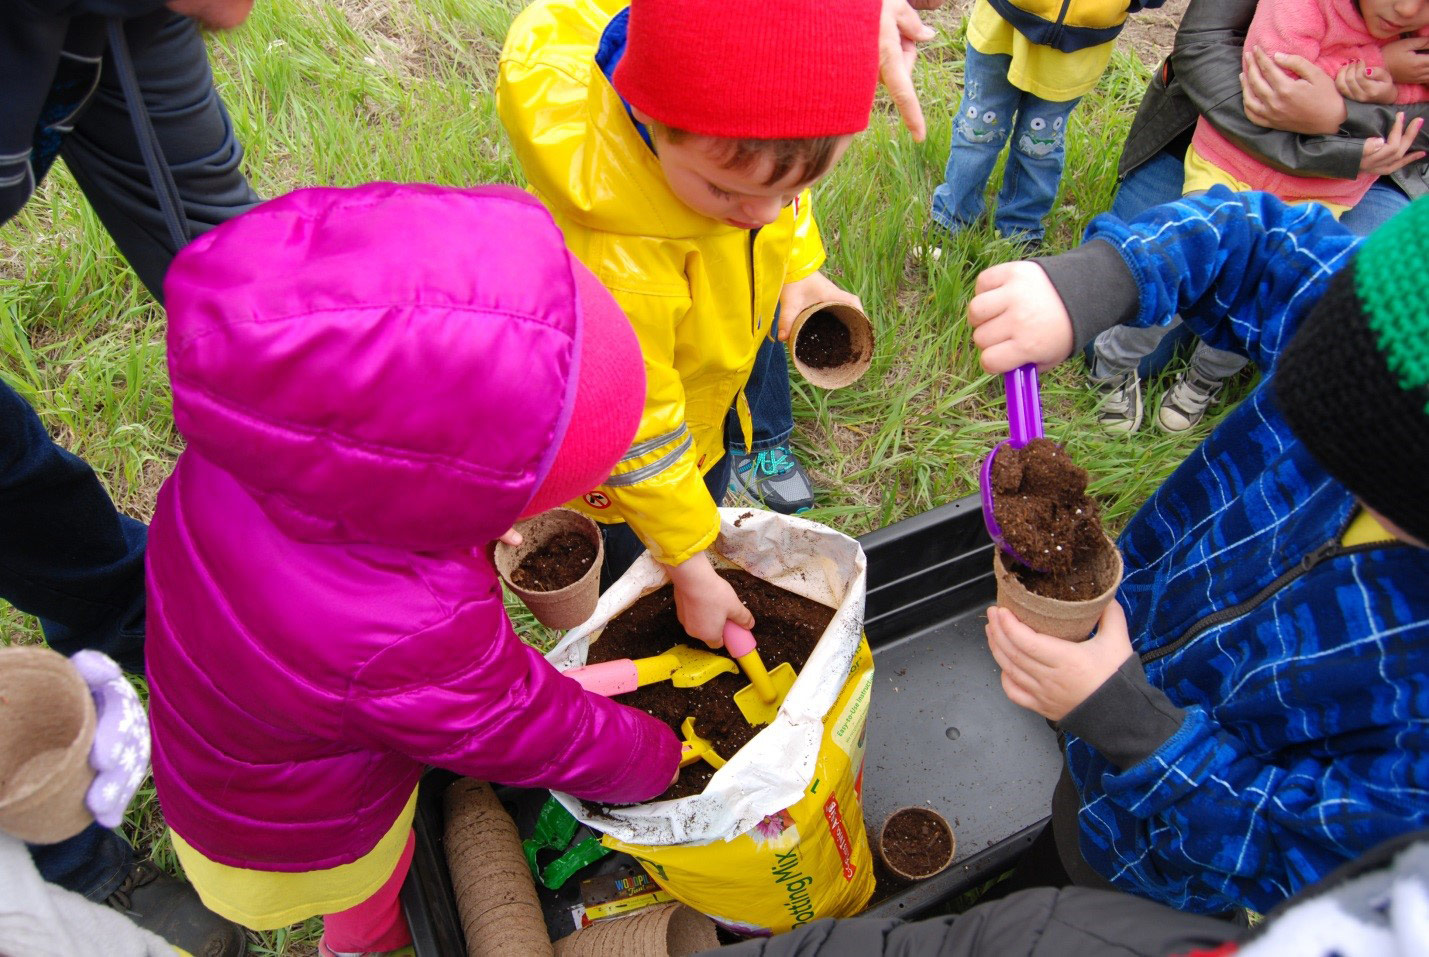 Children digging soil out of a pot for planting flowers